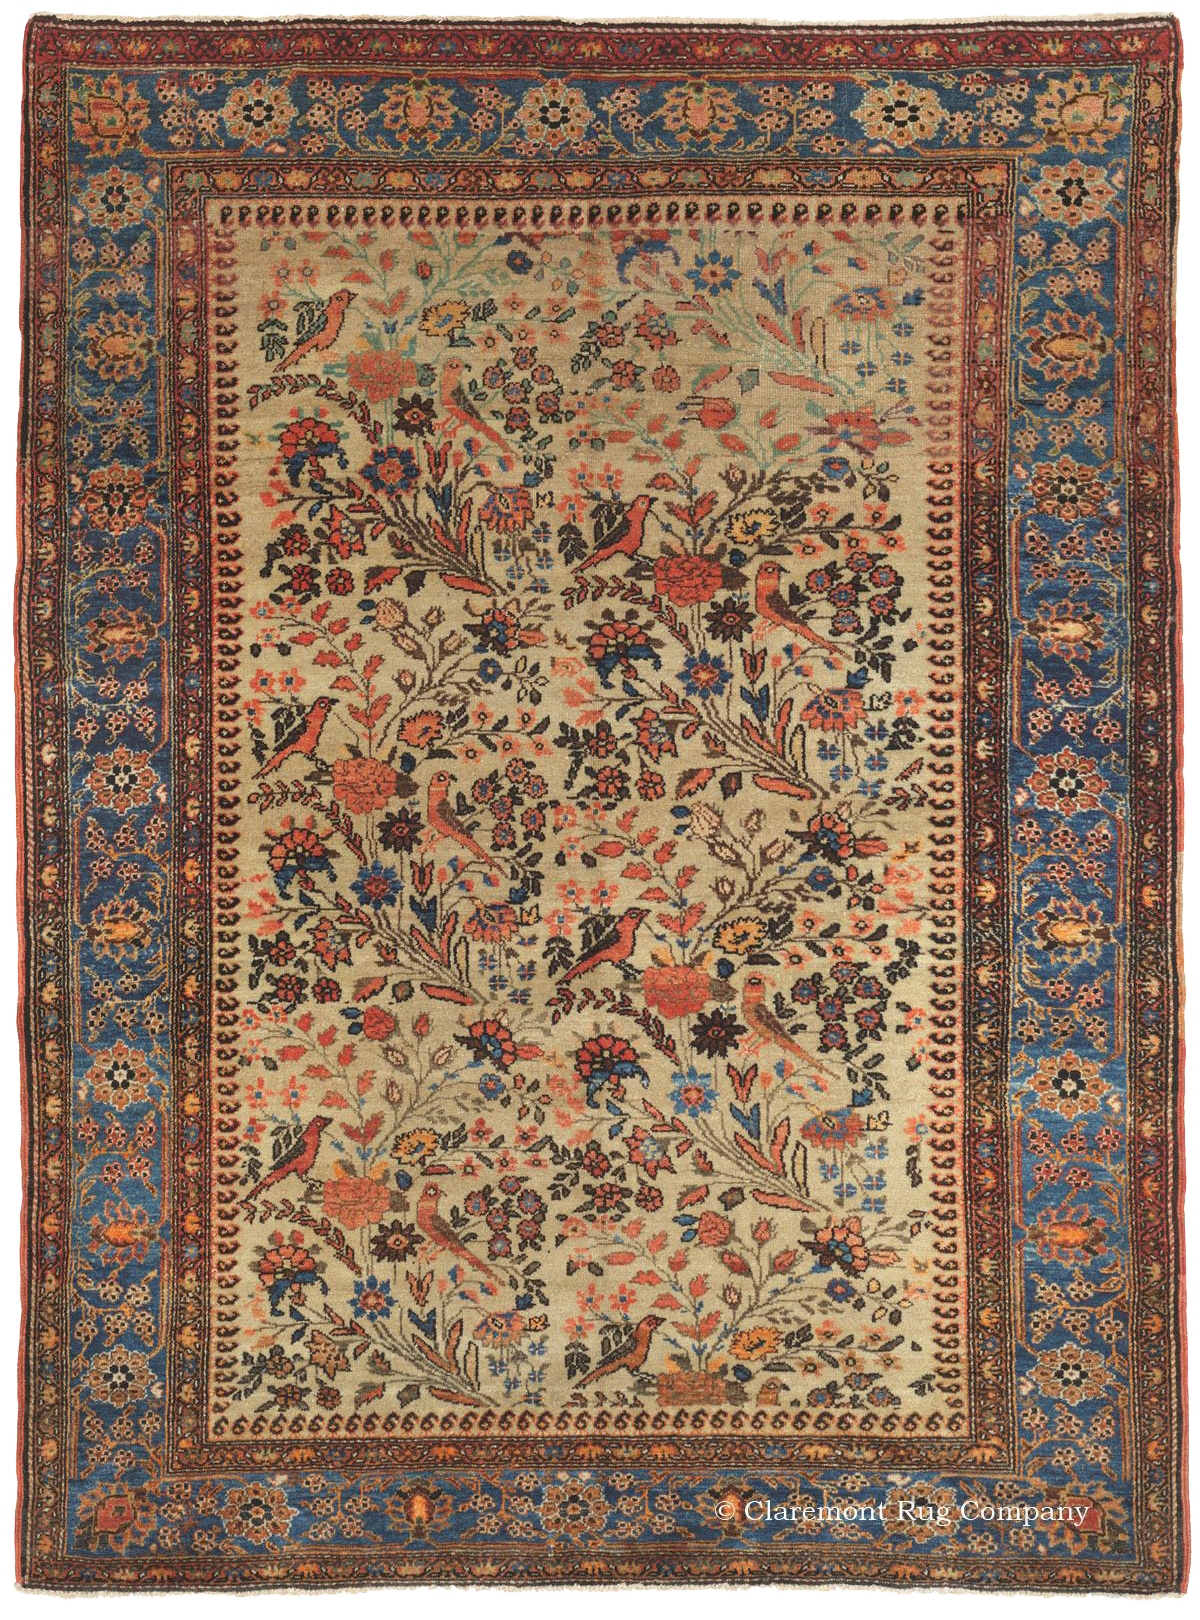 Antique Persian Rugs In The Village Tradition Claremont